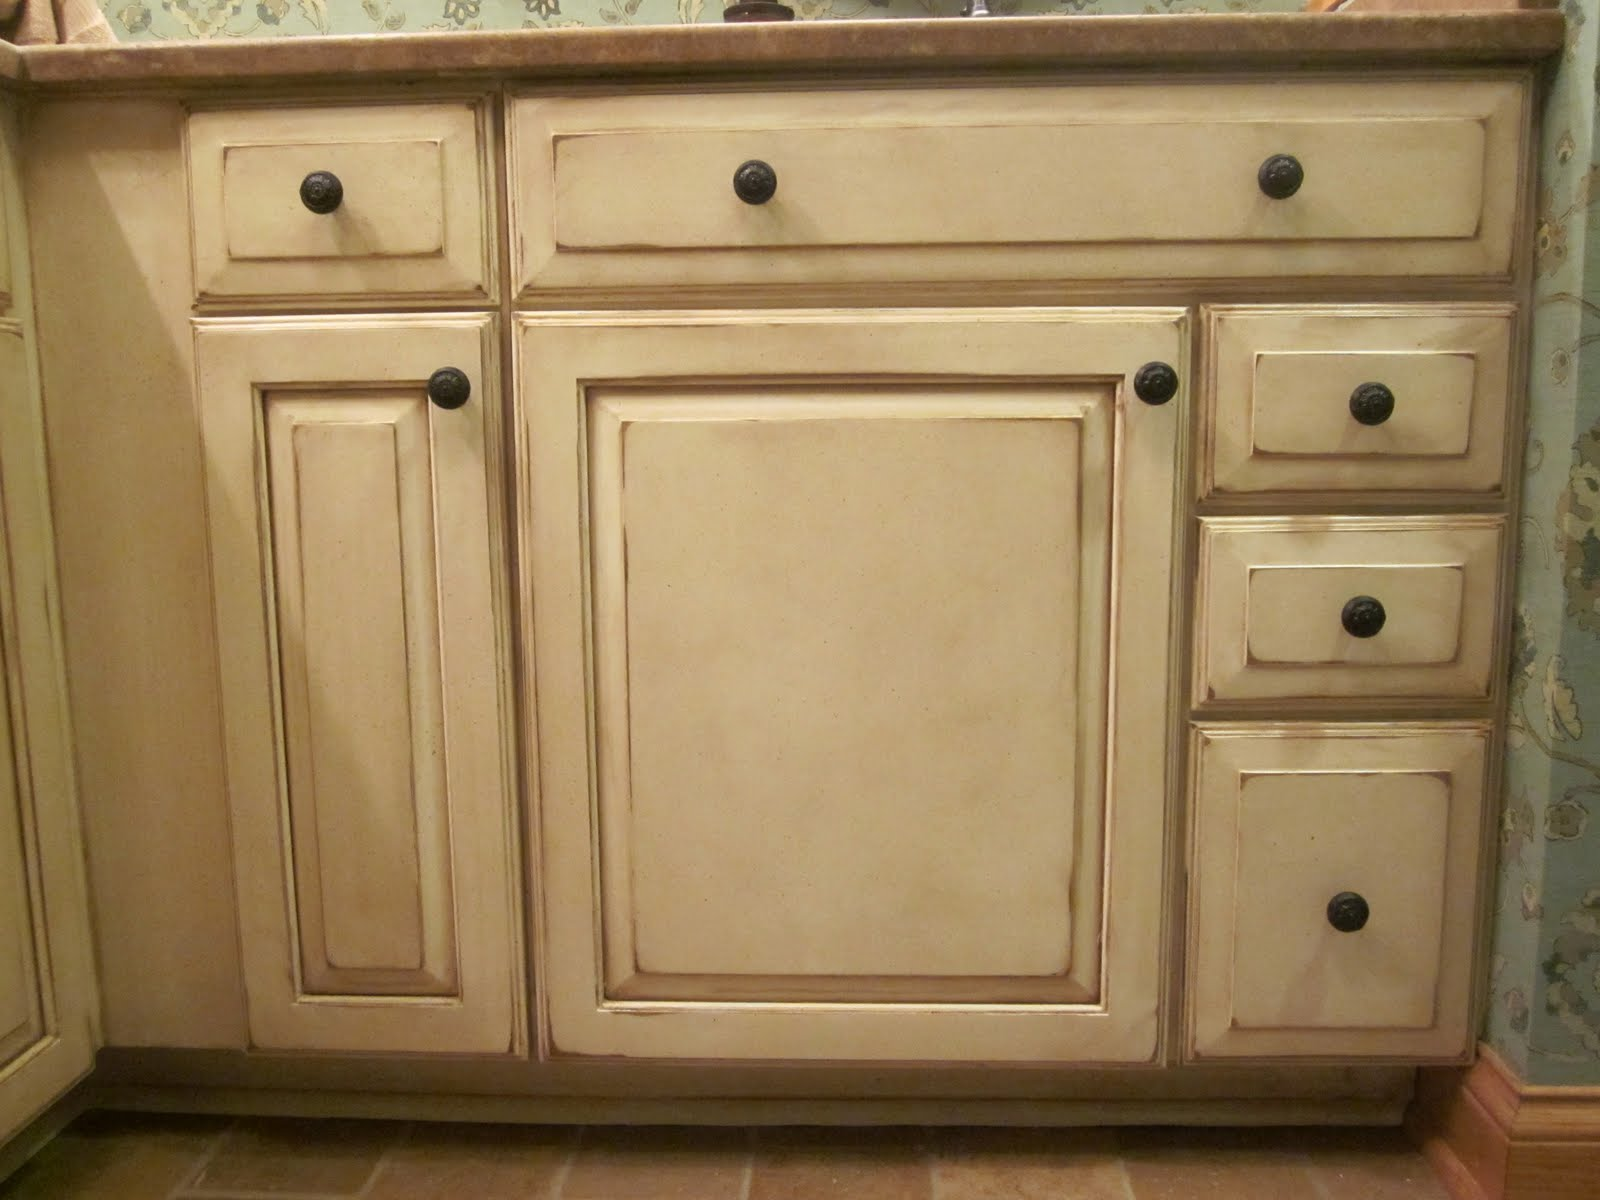 Dixon specialty finishes llc louisville faux hand painted cabinets before and after - How to glaze kitchen cabinets that are painted ...